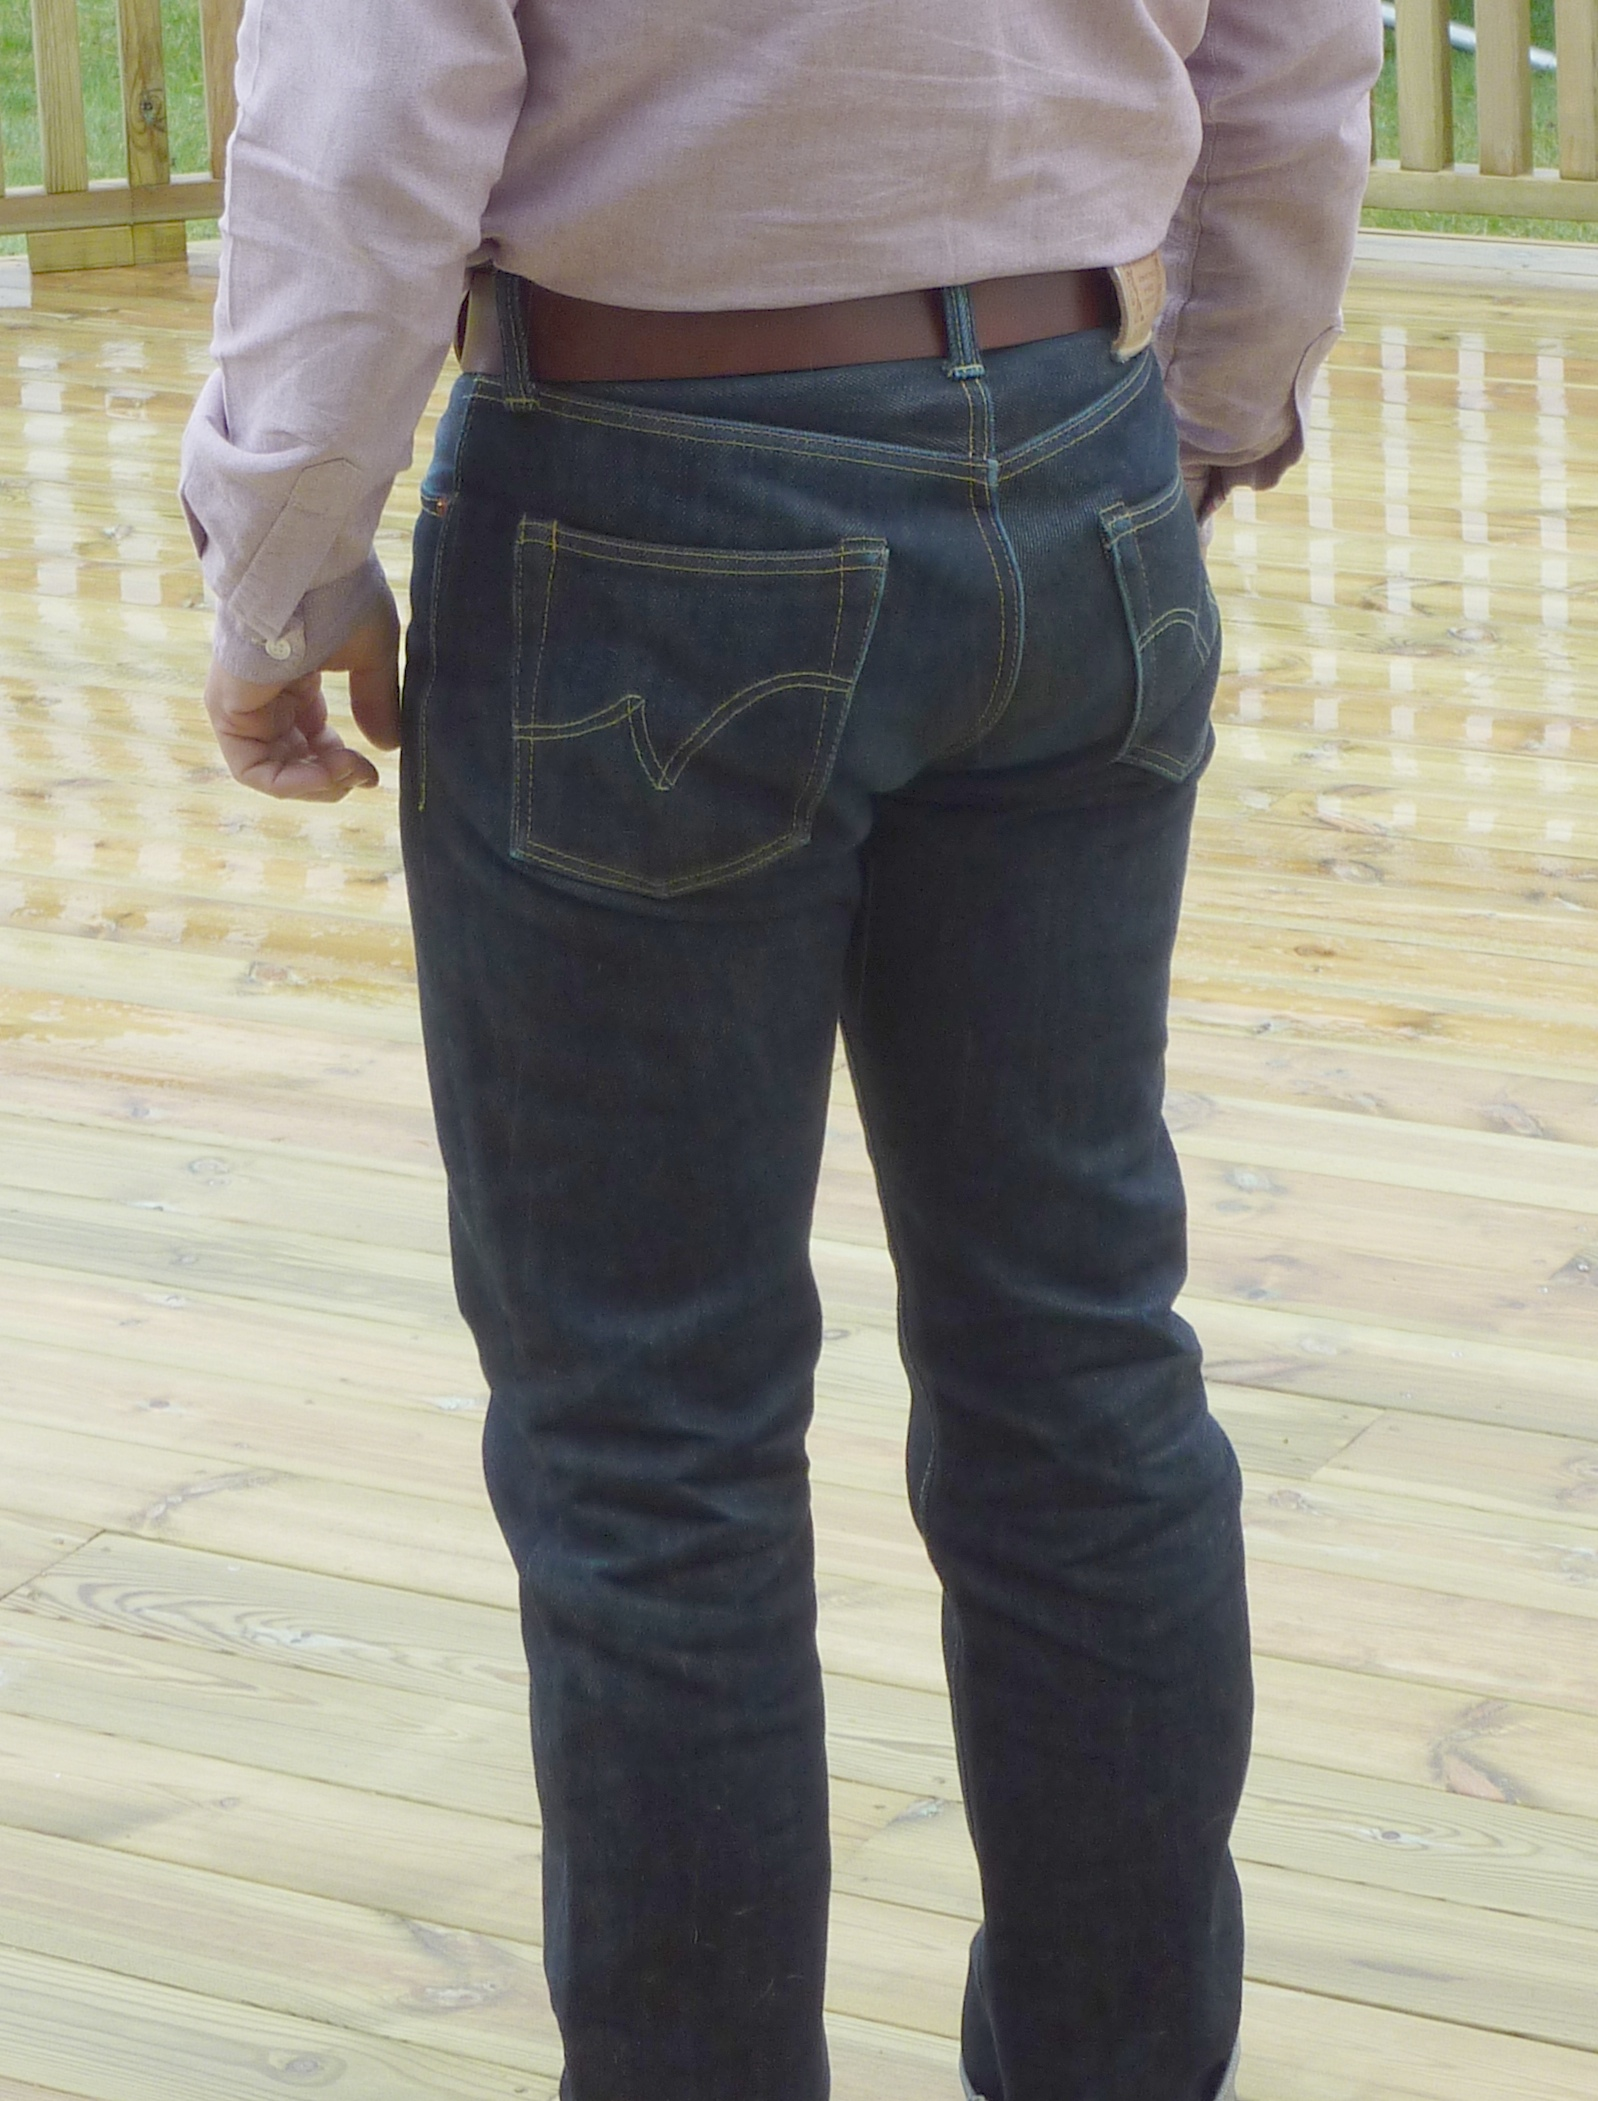 Professional posterior photo to illustrate butt-enhancing properties of the heavyweight denim.